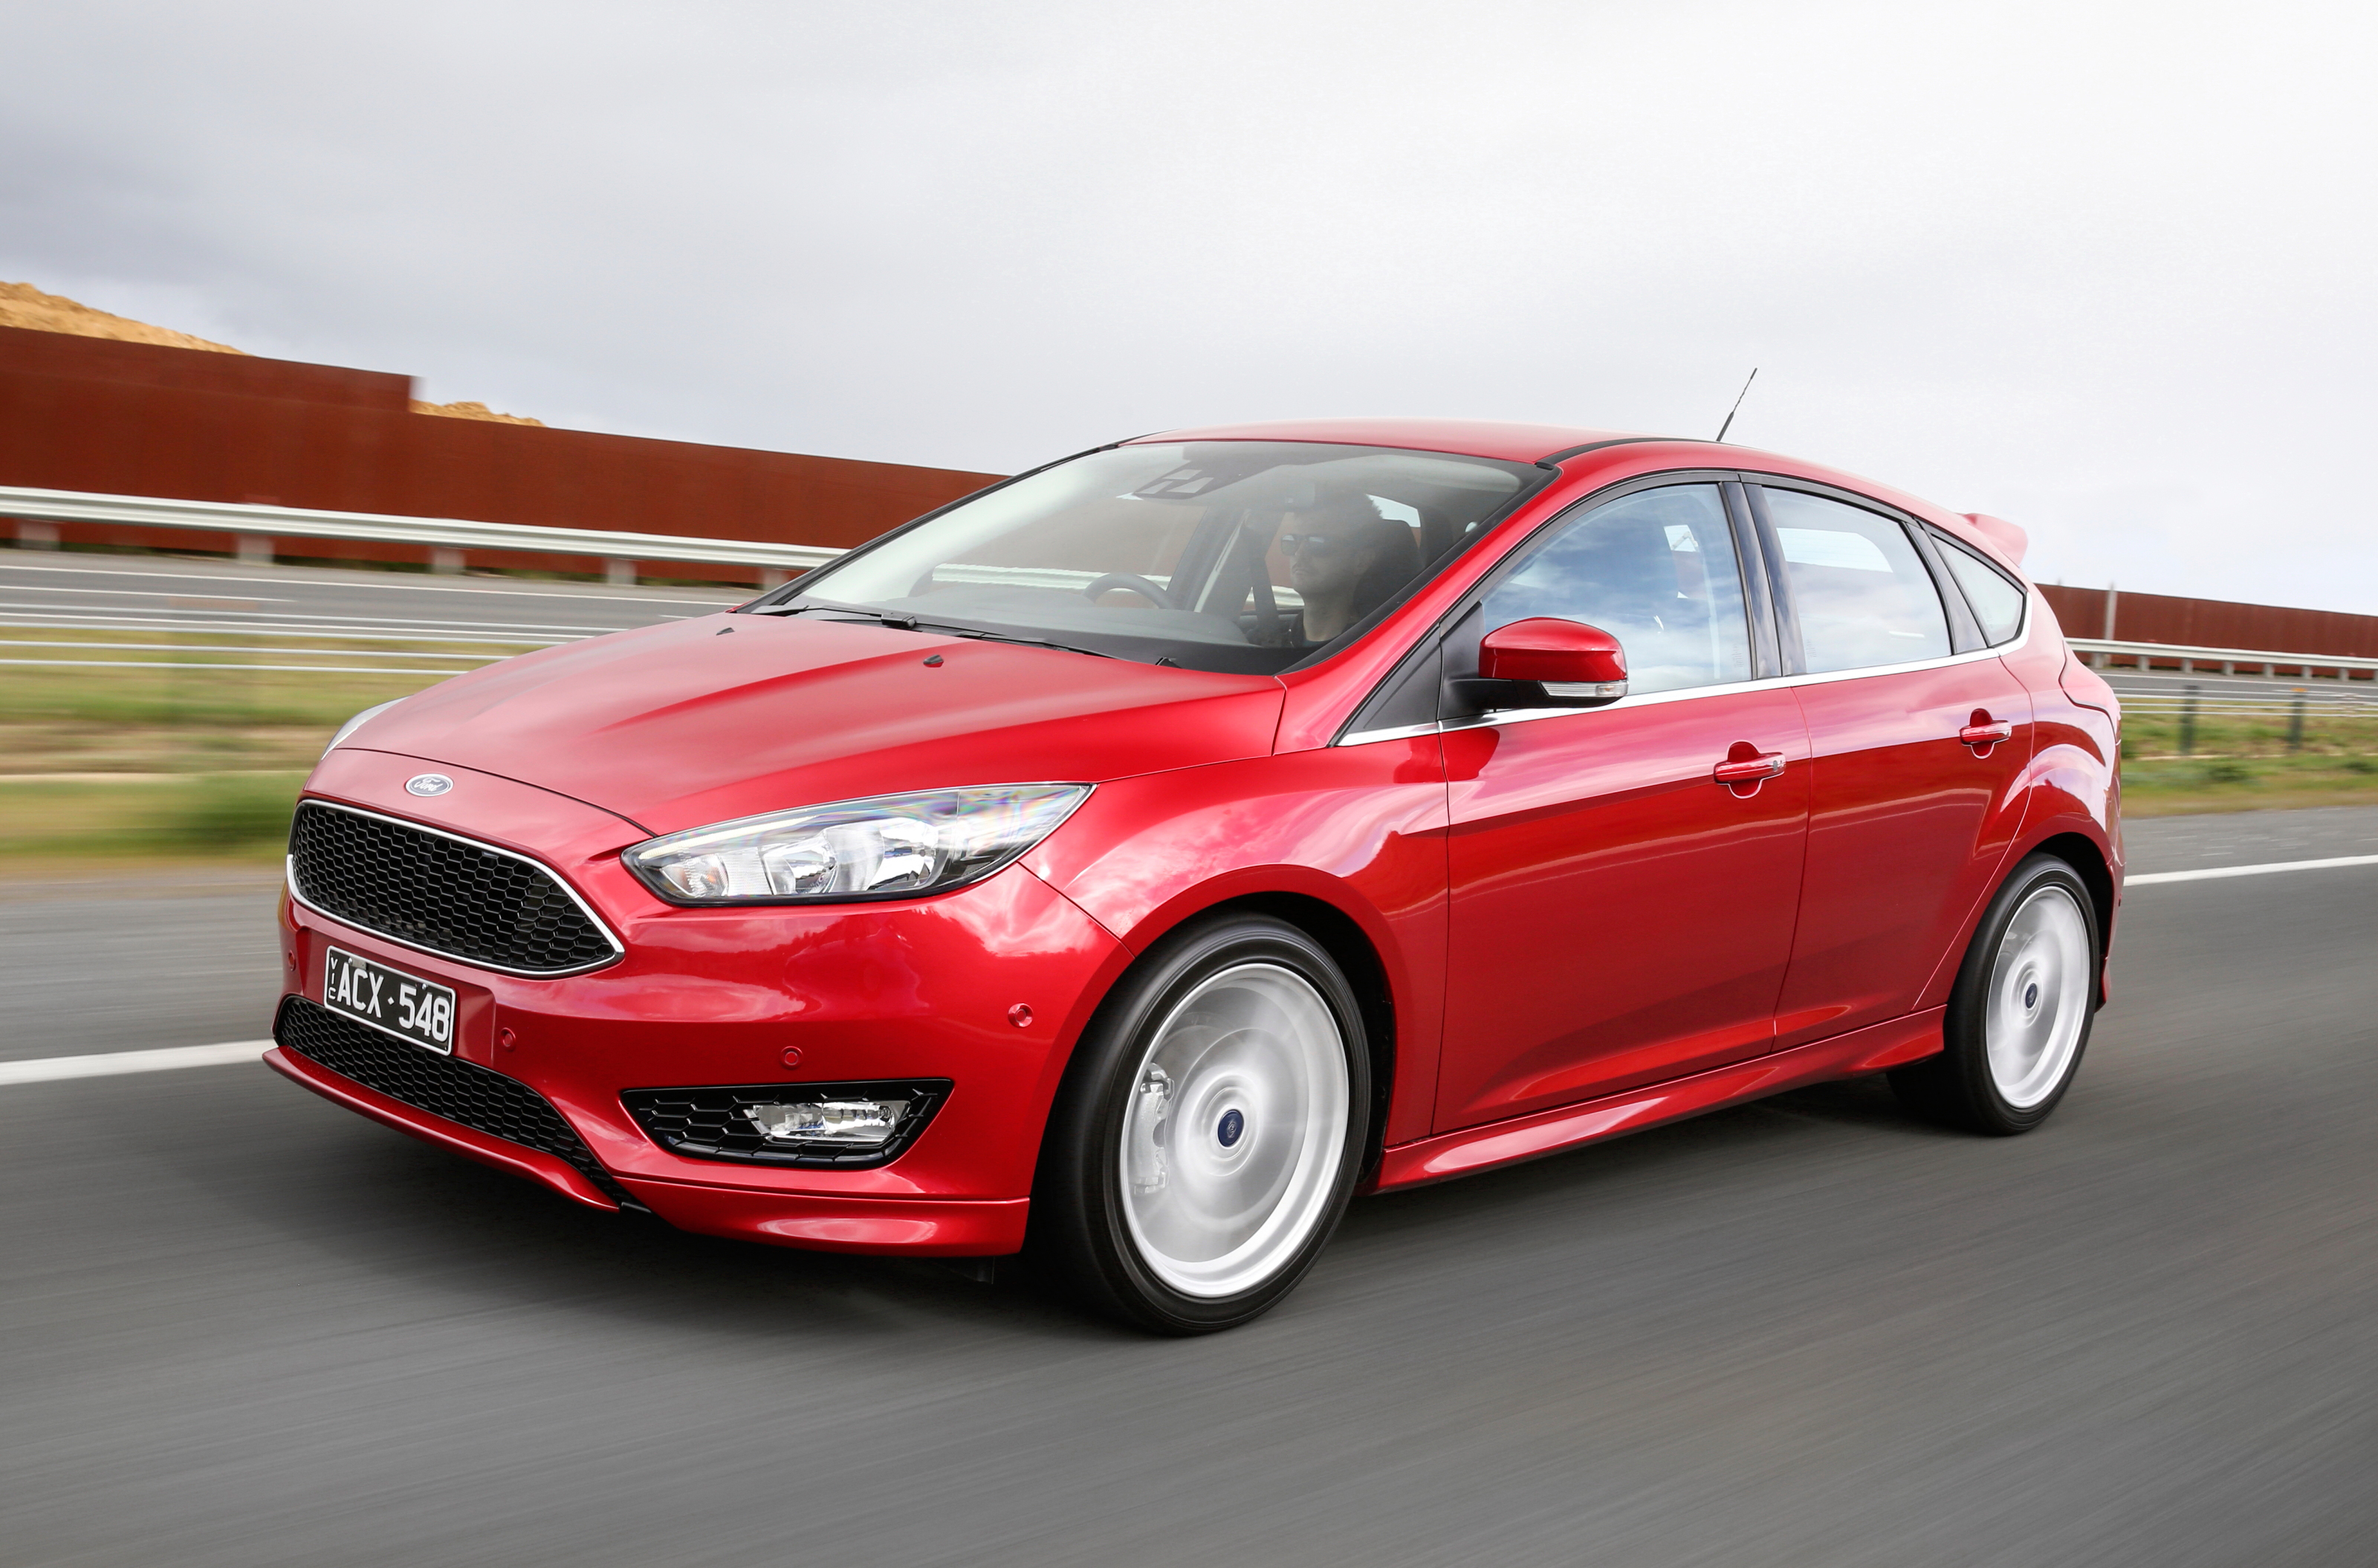 news new focus may be china made as ford mexico plan axed. Black Bedroom Furniture Sets. Home Design Ideas